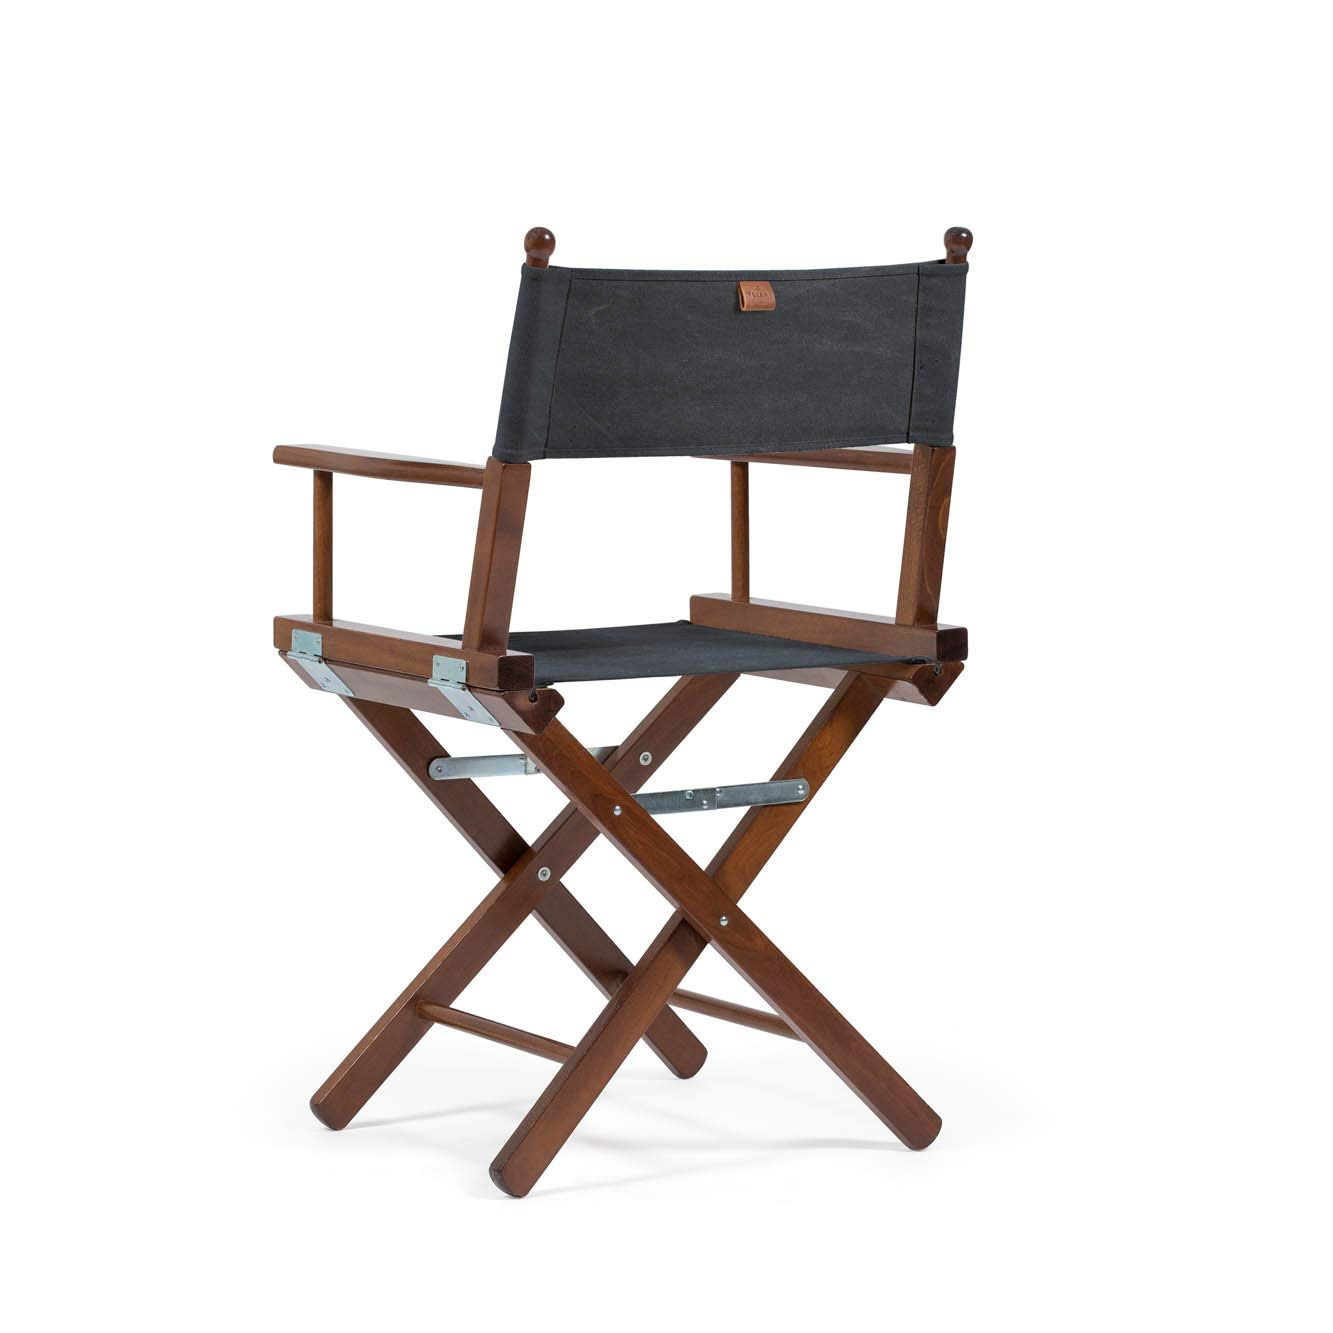 Telami Outlet Folding Beech Teak Wooden Directors Chair Made in Italy Charcoal Black Cover 52x46x91,5 cm Outdoor Furniture